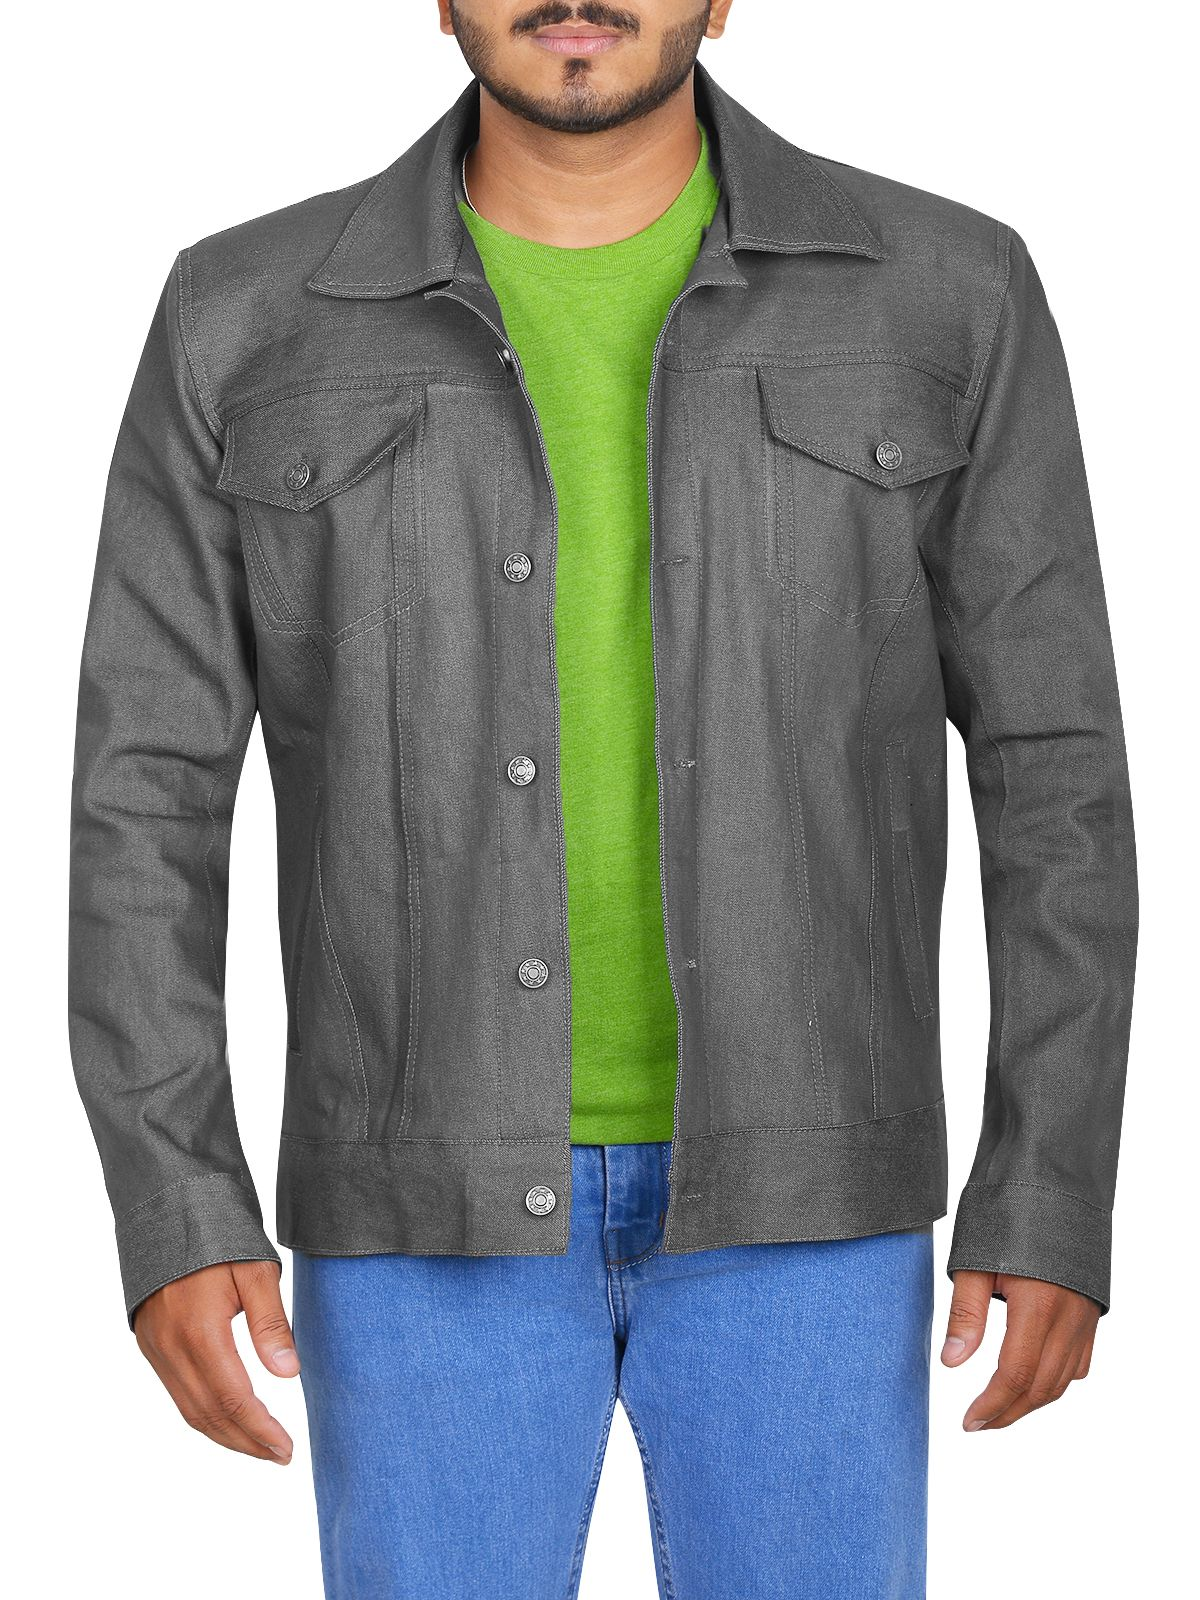 To acquire Light cool jackets for men photo picture trends